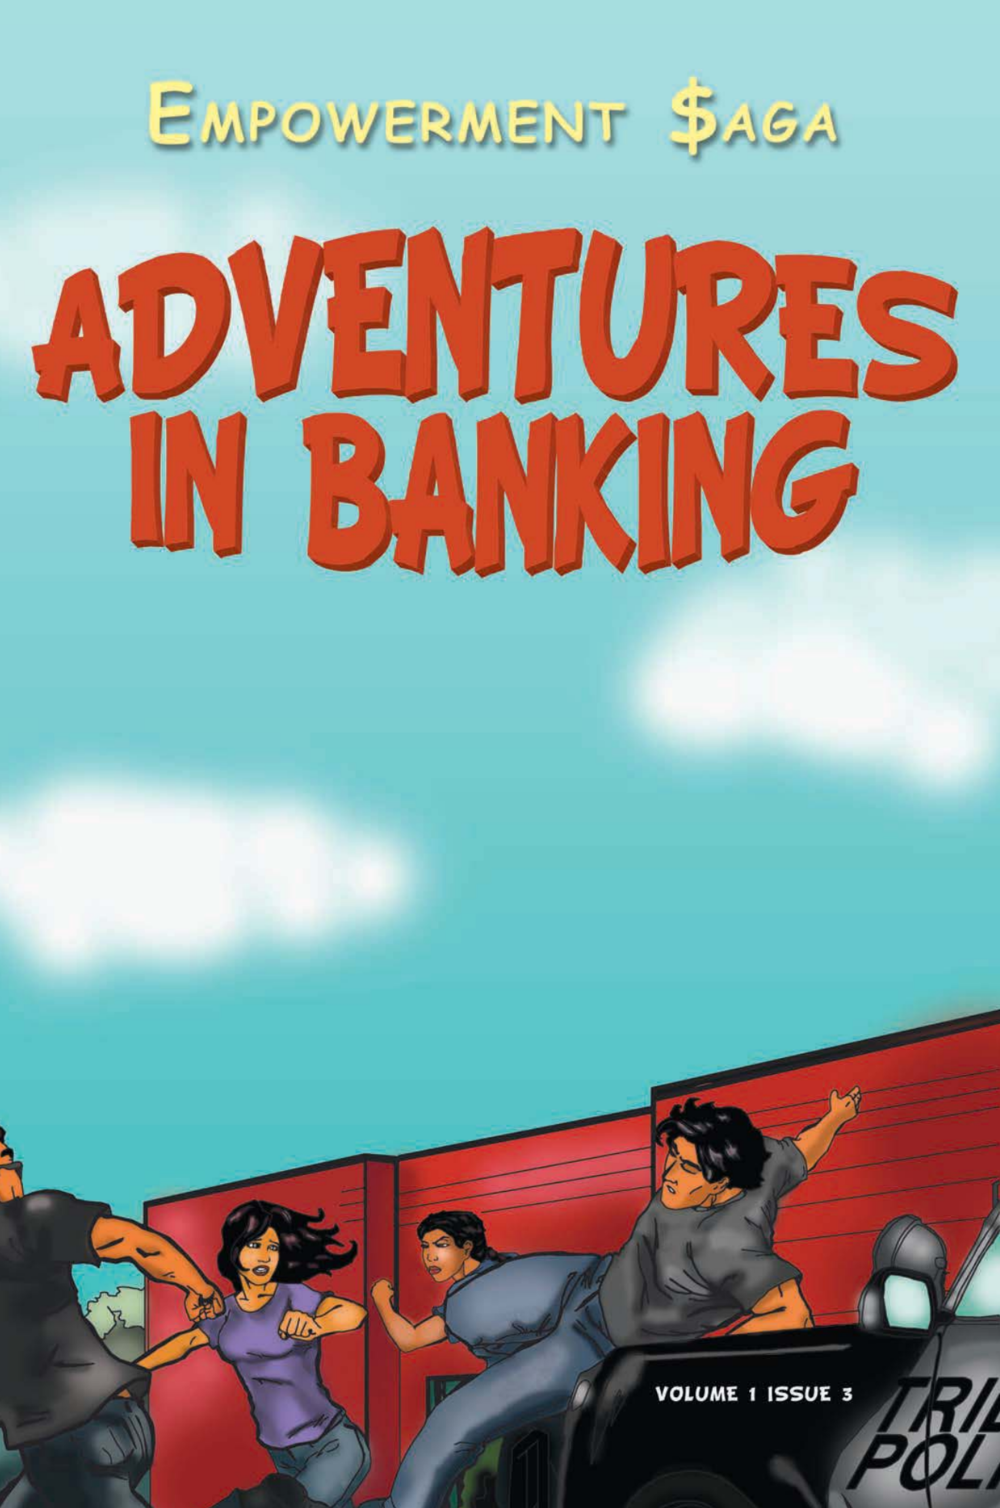 Book 3: Adventures in Banking